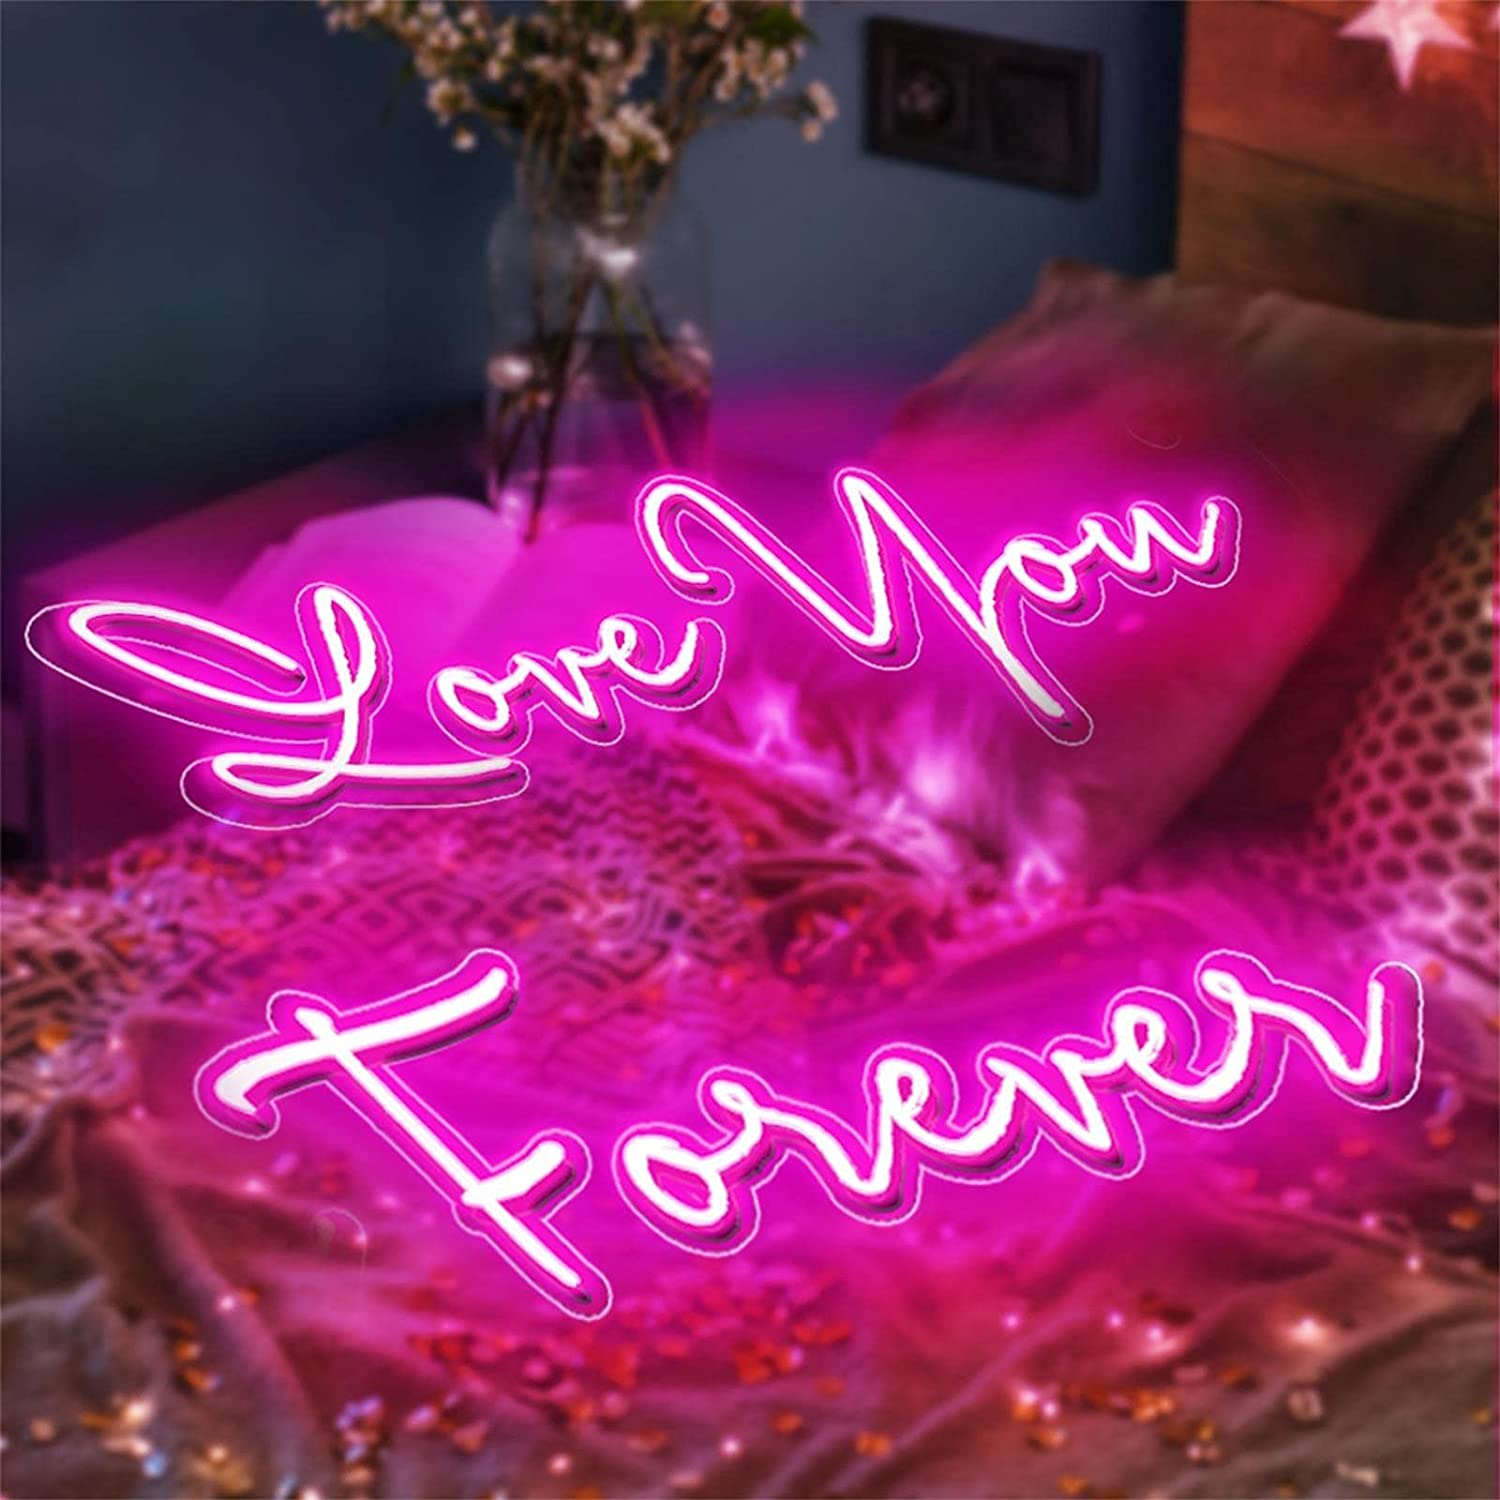 Buy Custom Neon Signs for Wall Decor Personalized Your Name Text Logo, Customized LED Neon Lights Sign Bedroom Bar Salon Wedding Party Decor Gifts  Online in Turkey. B091Z1GQYG